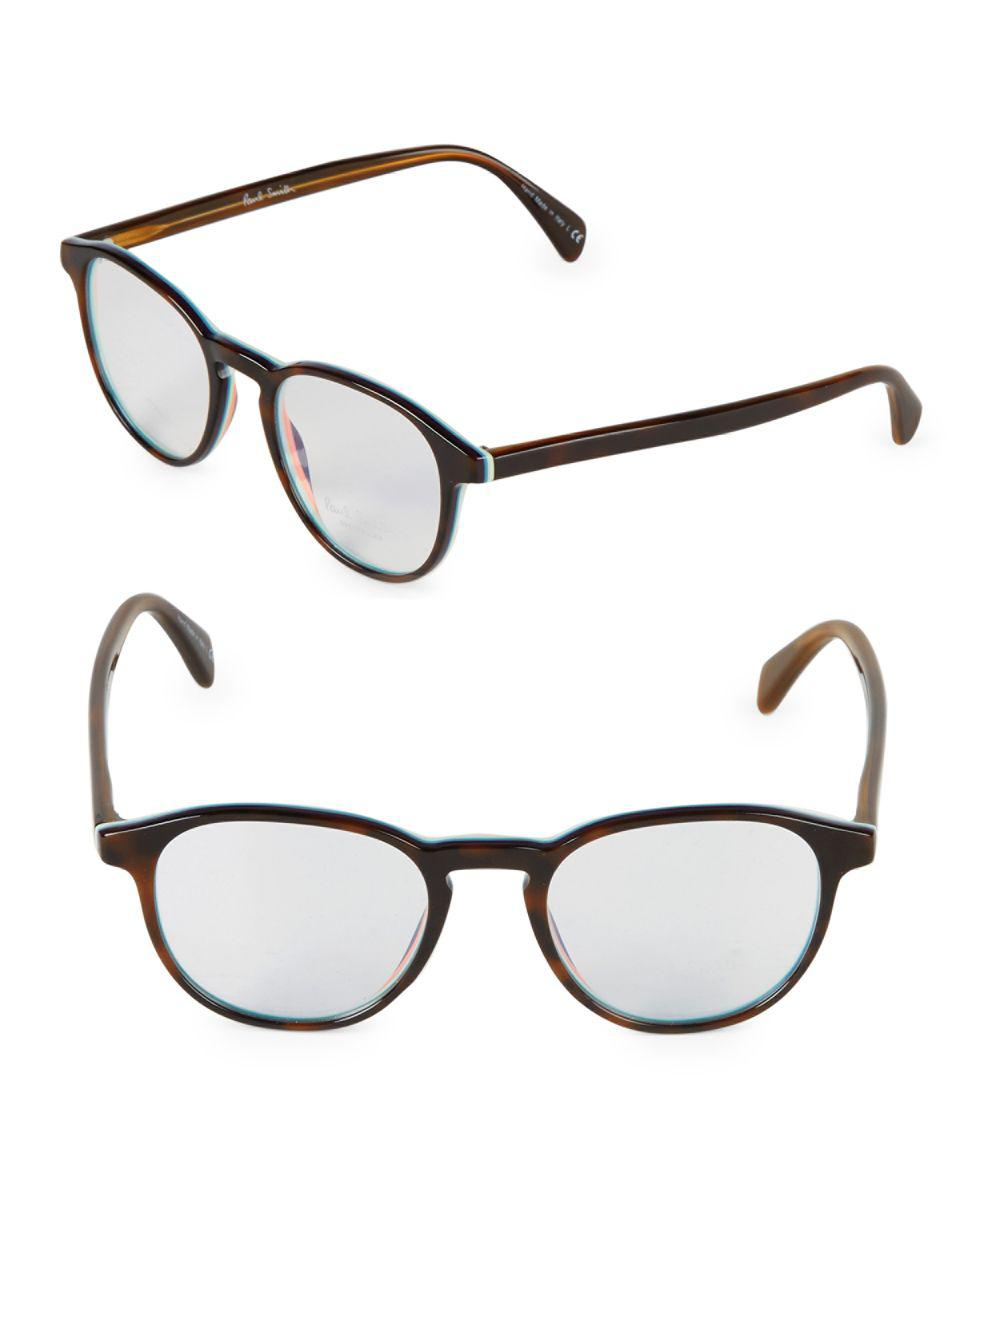 d28ca56ea1 Paul Smith Mayall 48mm Round Eyeglasses in Brown - Lyst